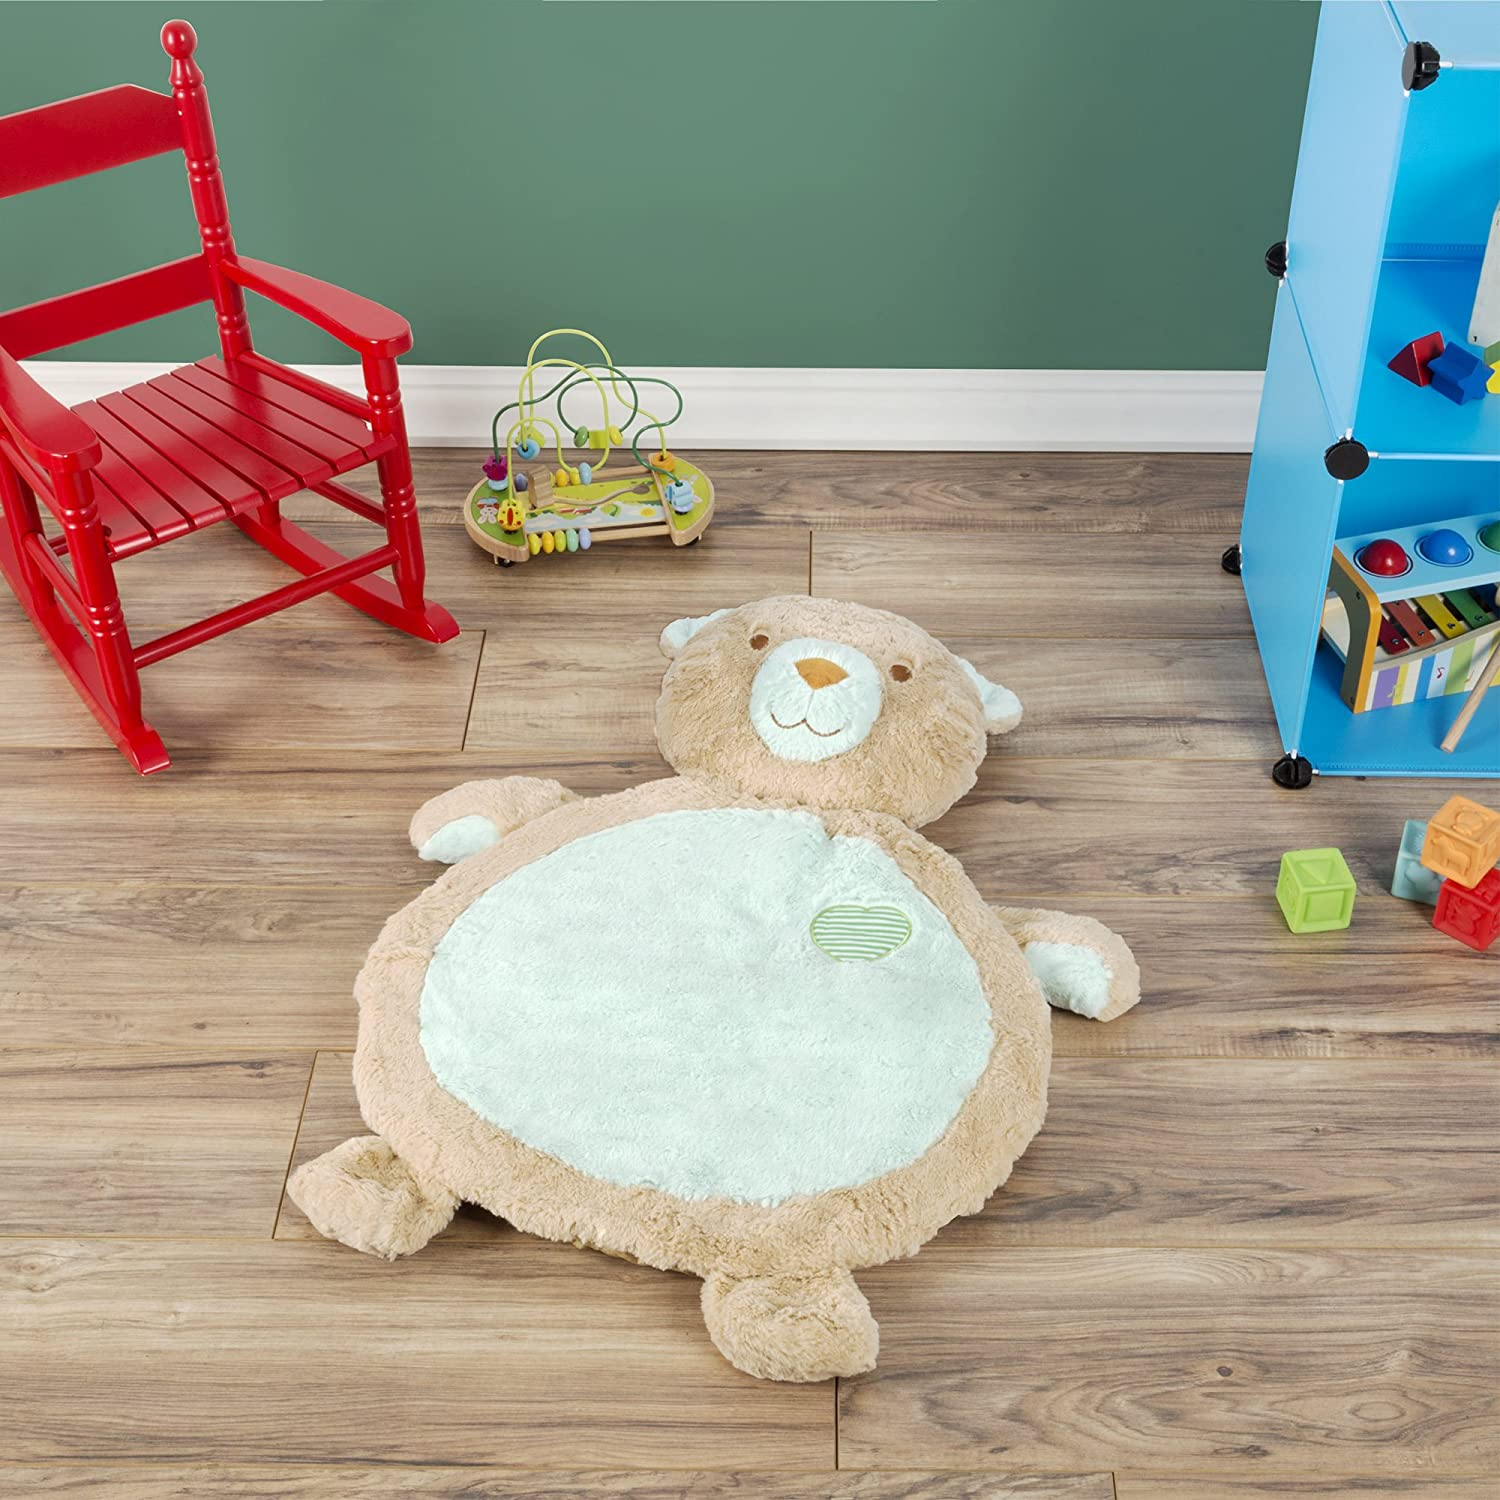 Tan Playing and Sitting for Boys and Girls Happy Trails 80-SUM-170330 Bear Baby Mat-Soft Infant//Toddler Stuffed Animal Floor Cushion Friend for Tummy Time